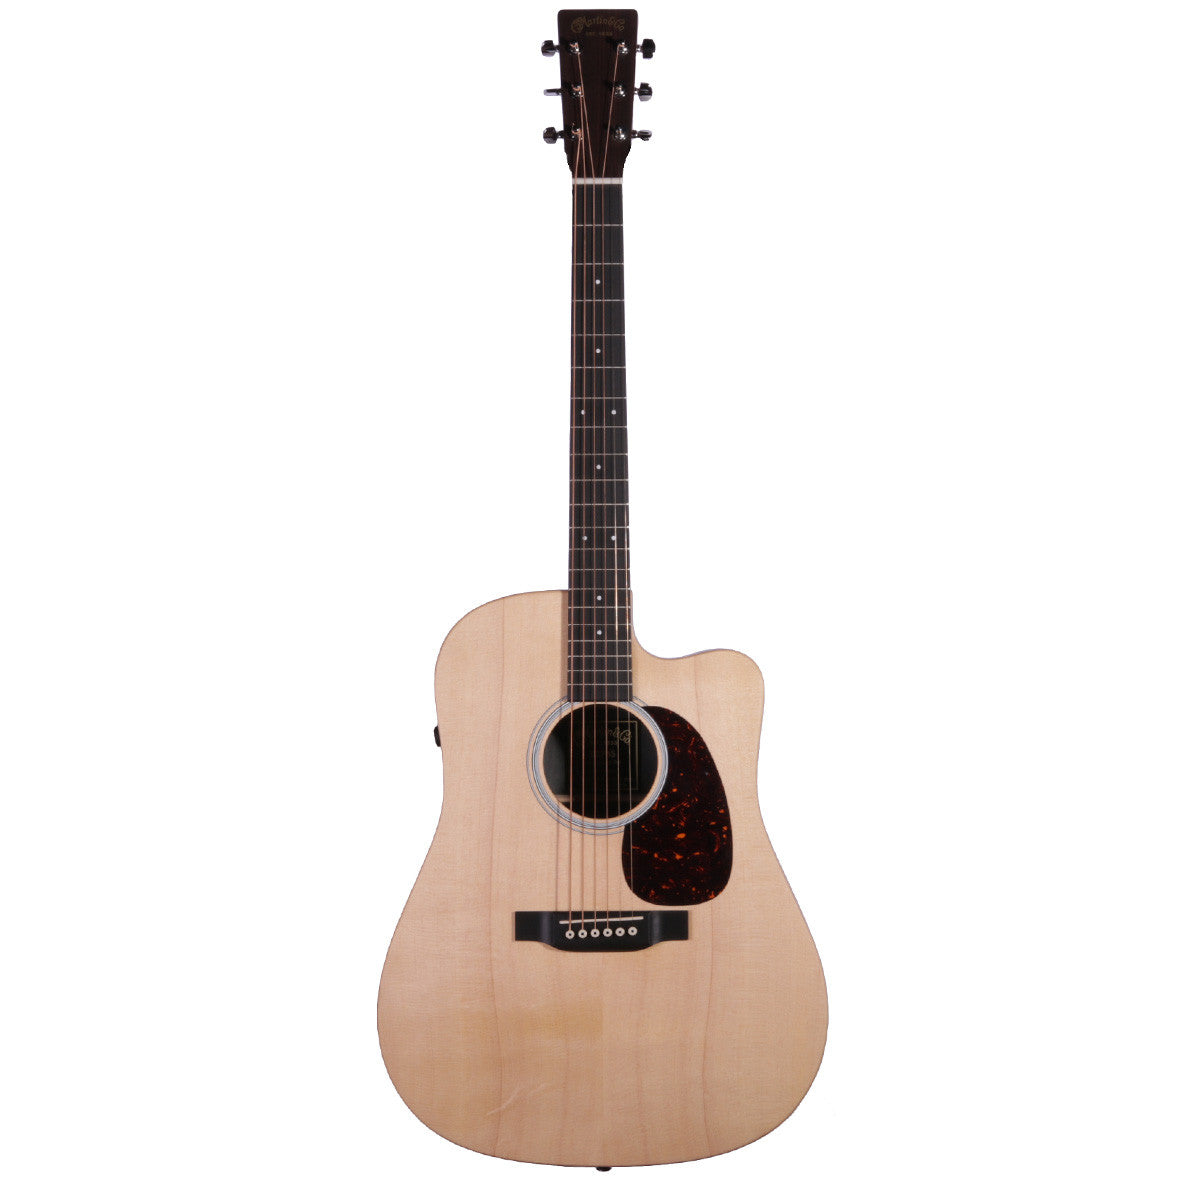 Martin DCPA5 - Performing Artist Series - Vintage Guitar Boutique - 2